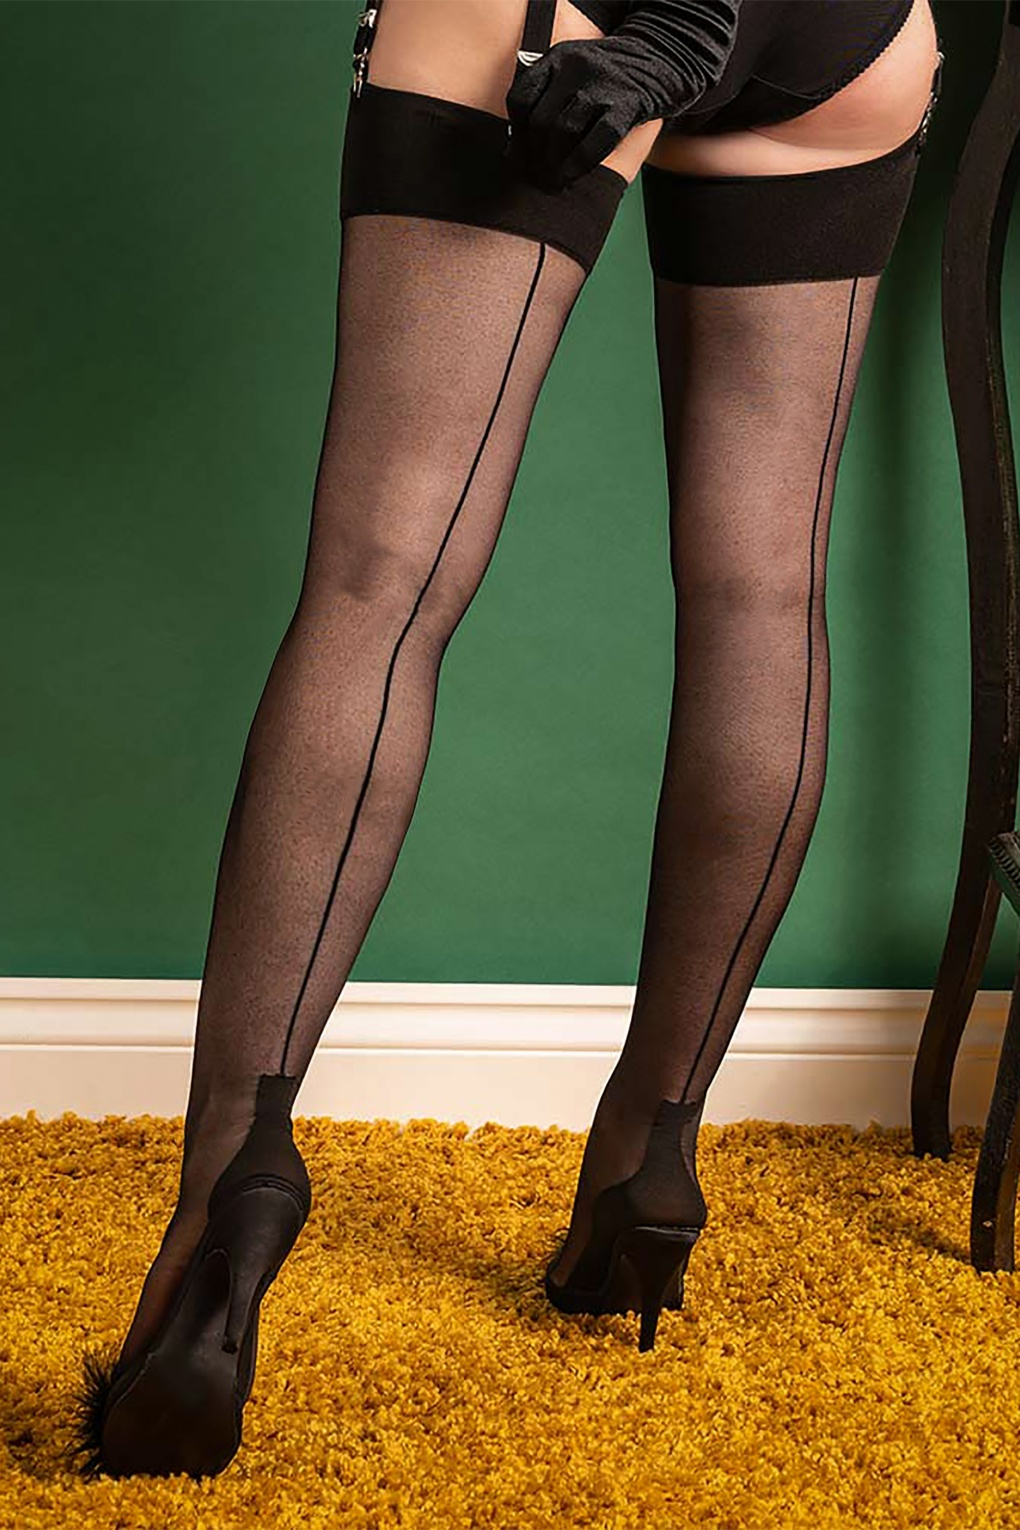 1940s Stockings, Nylons, Knee Highs, Tights, Pantyhose 40s Cuban Heel Stockings in Black £13.29 AT vintagedancer.com